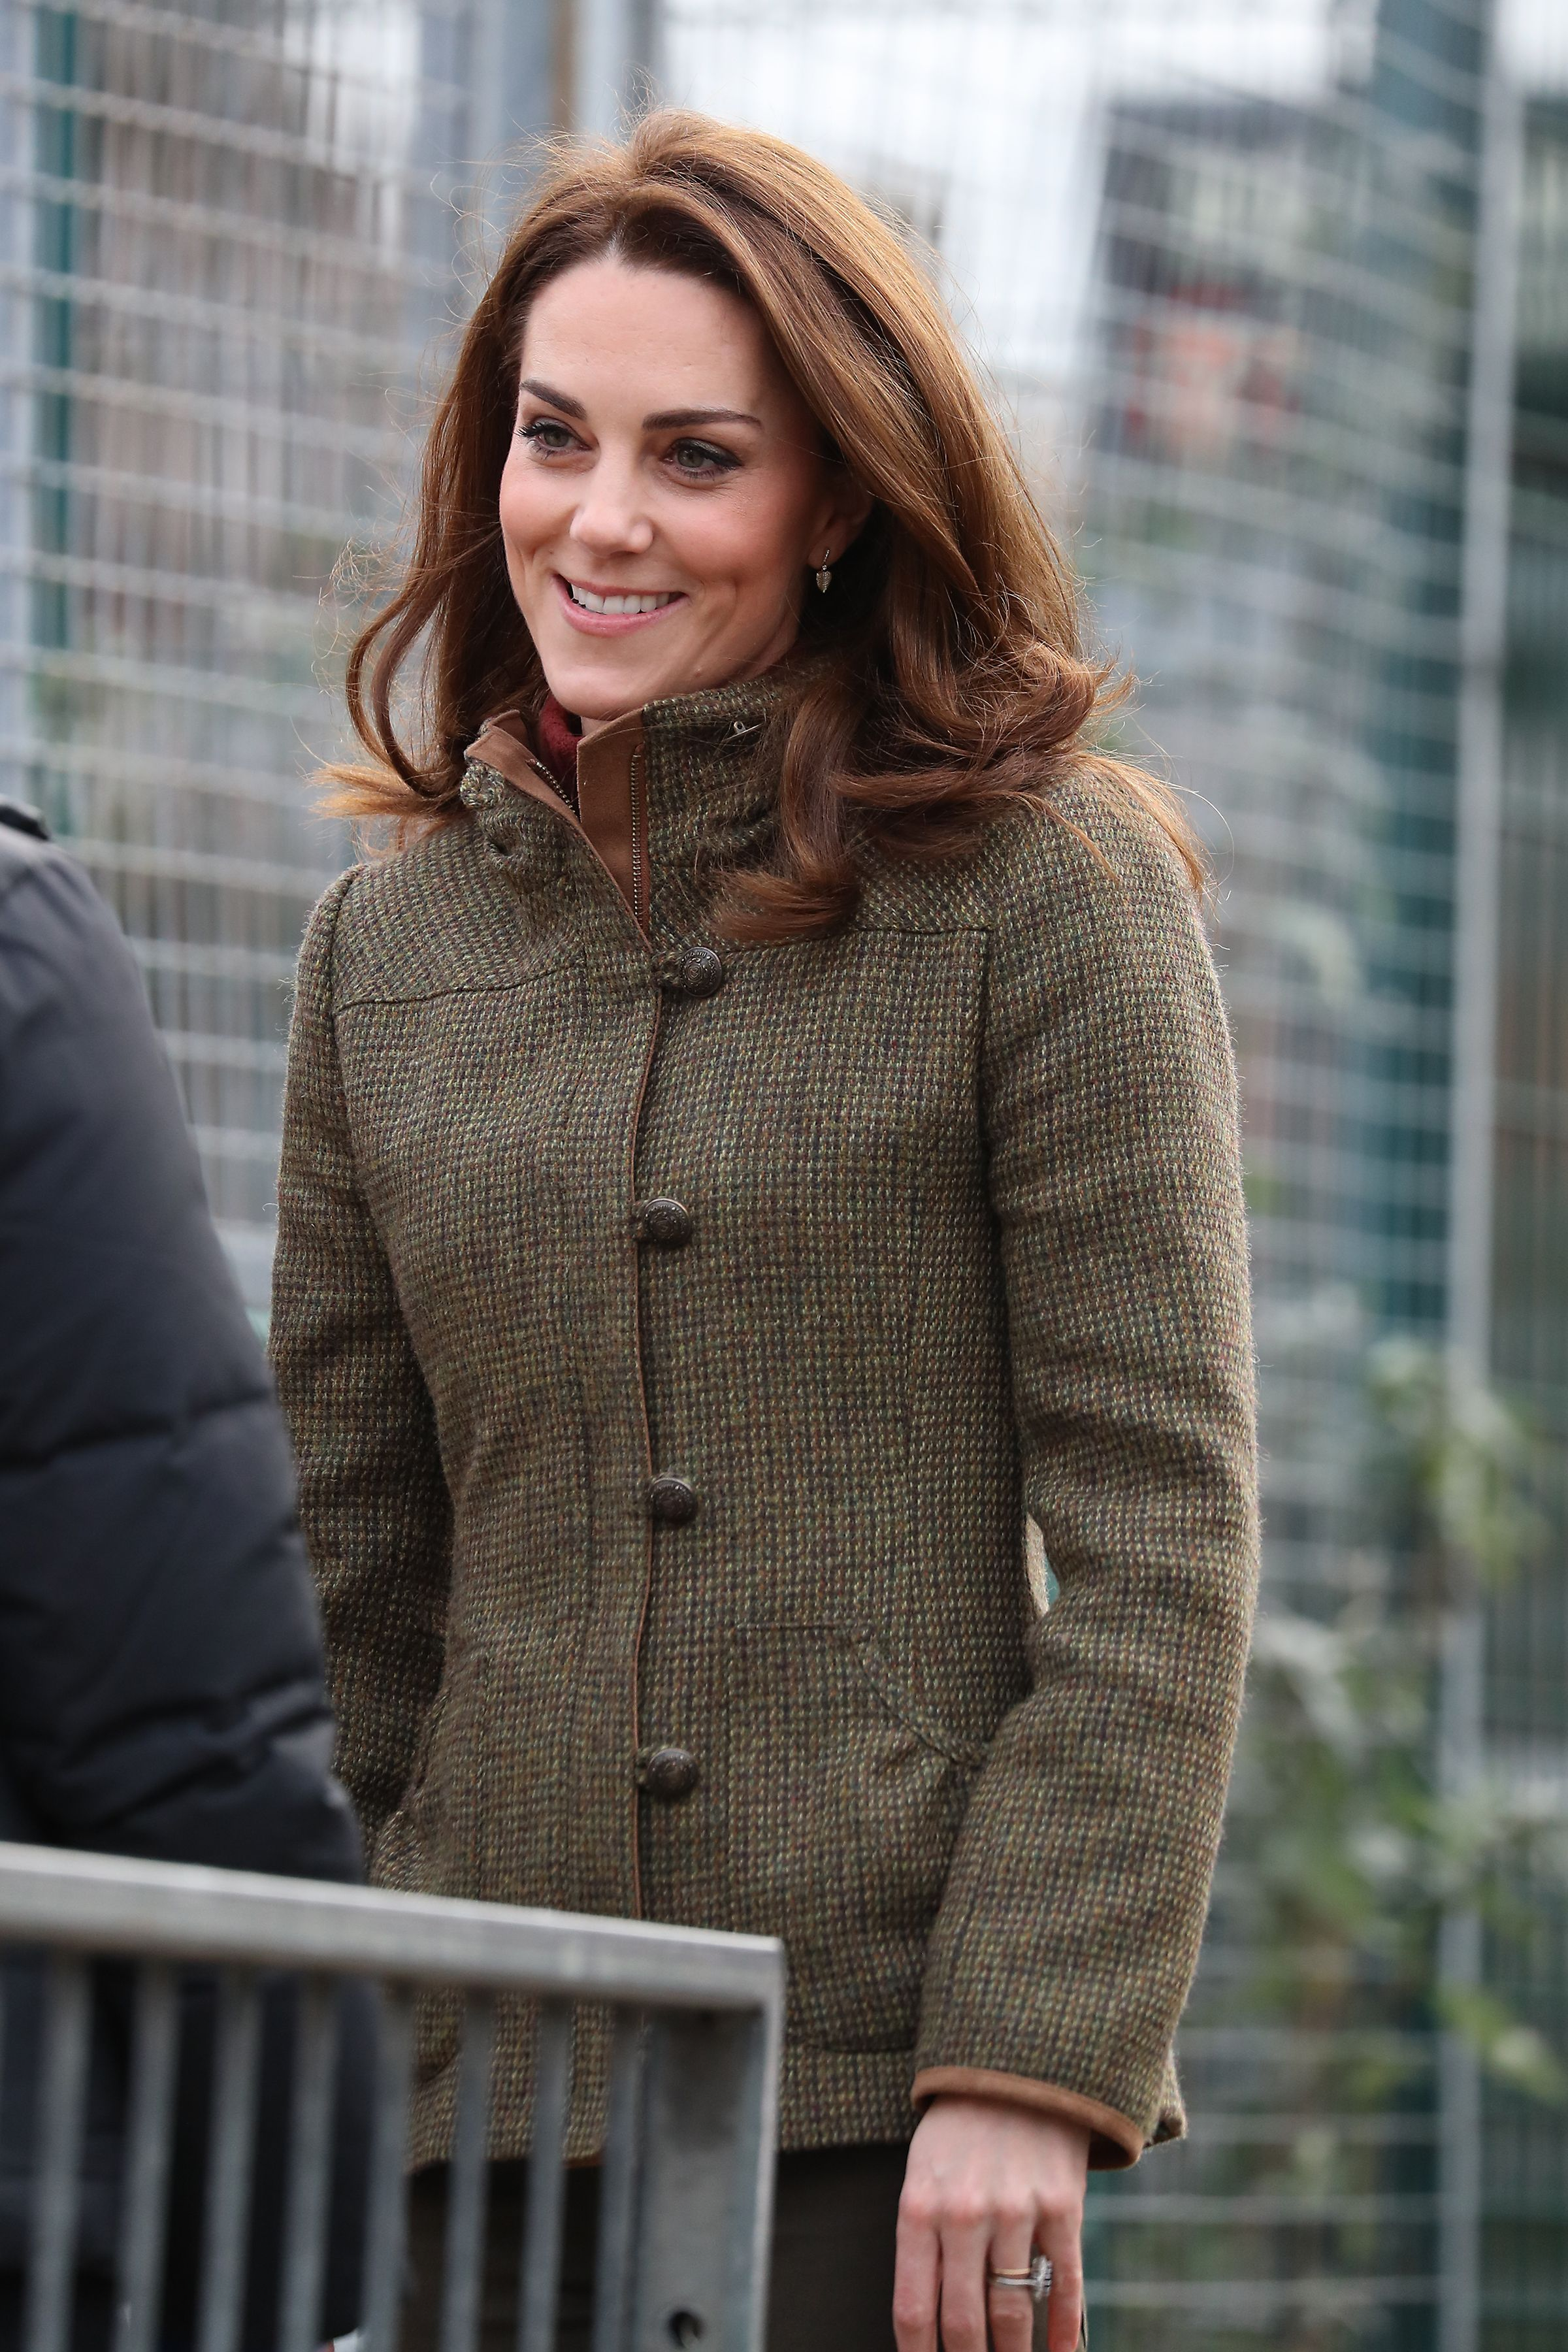 Kate Middleton Wears a Tweed Jacket, Skinny Jeans, and